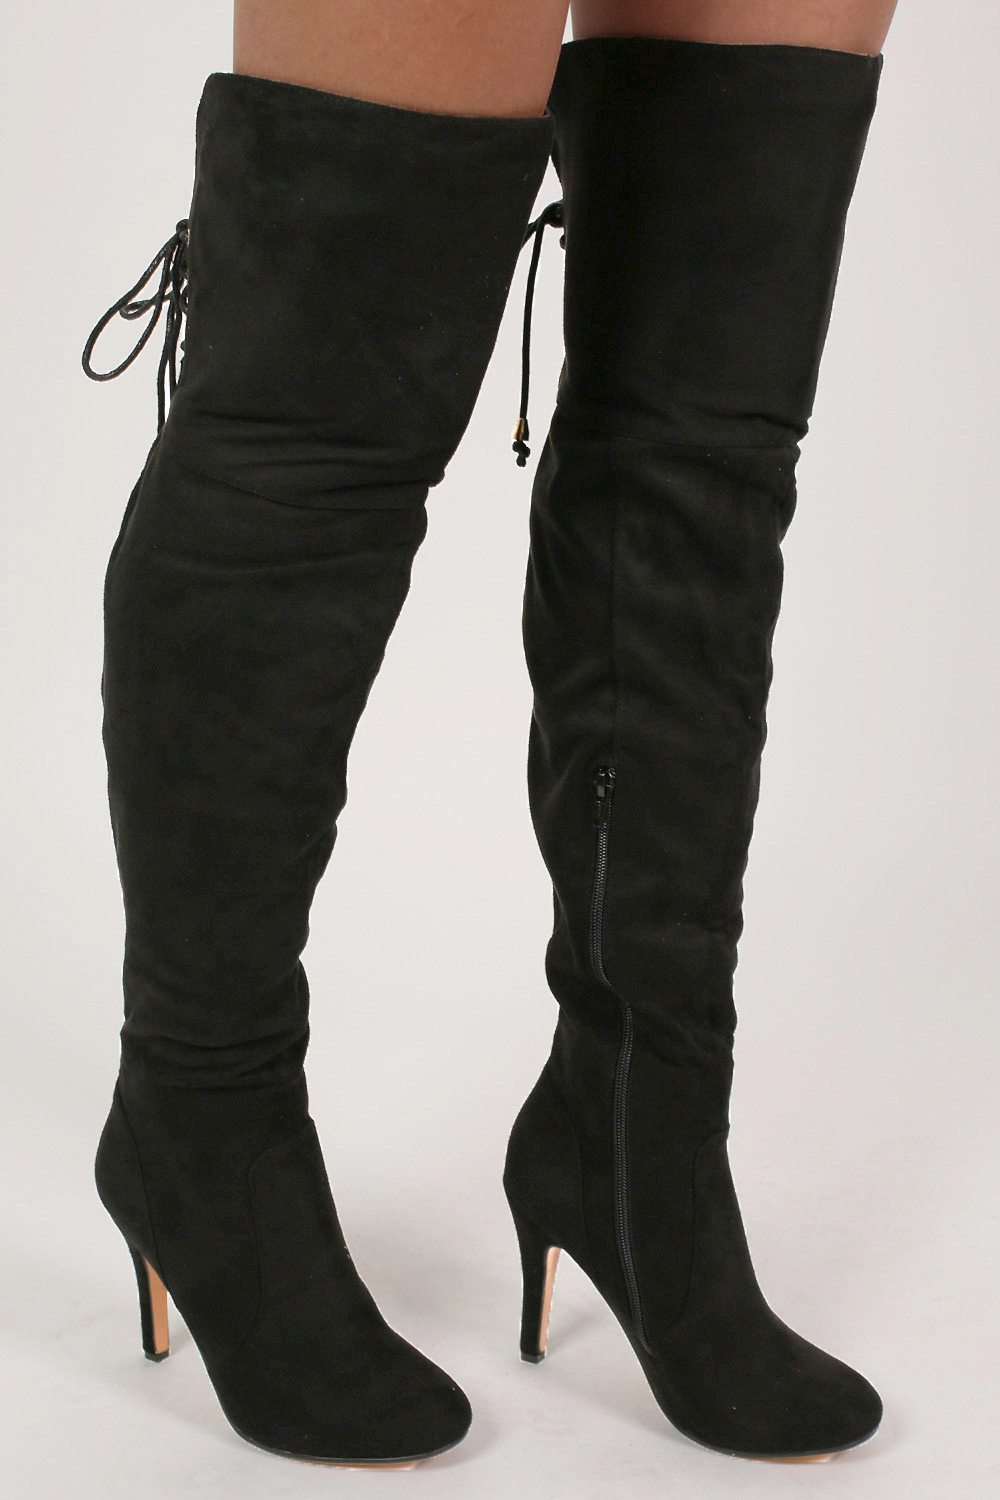 Faux Suede Over The Knee Stiletto High Heel Boots in Black MODEL SIDE